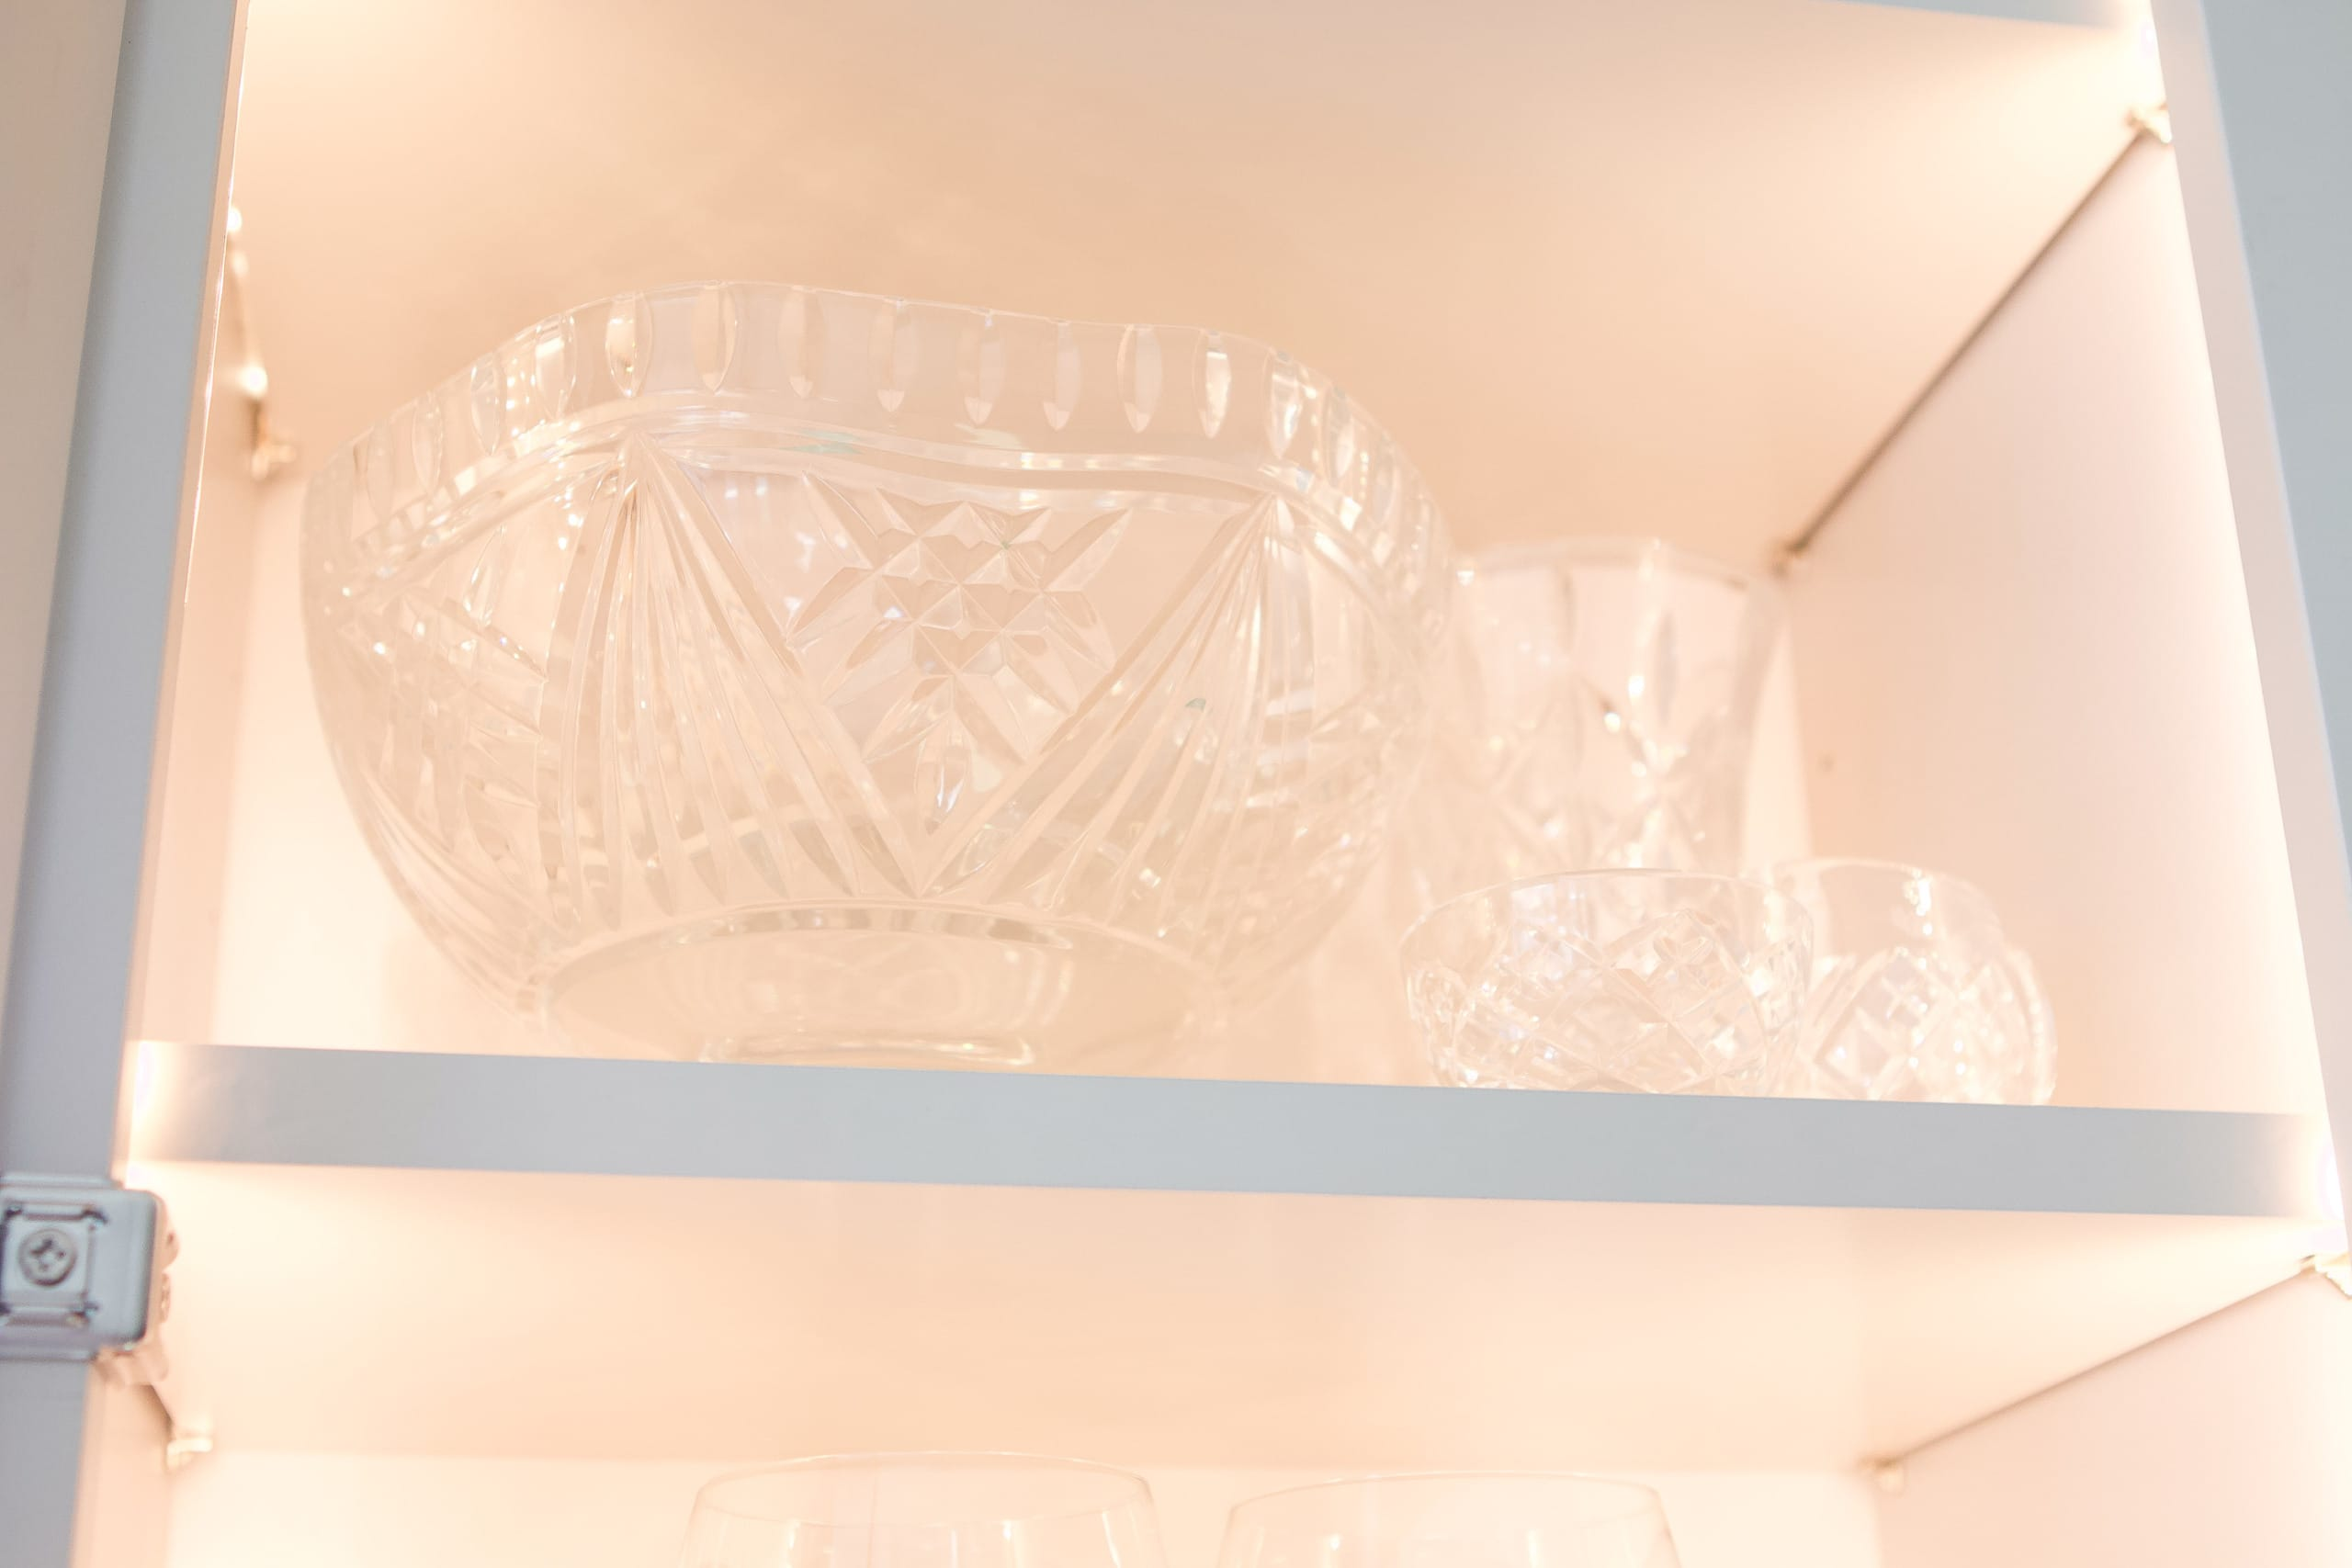 Waterford crystal in the glass cabinets